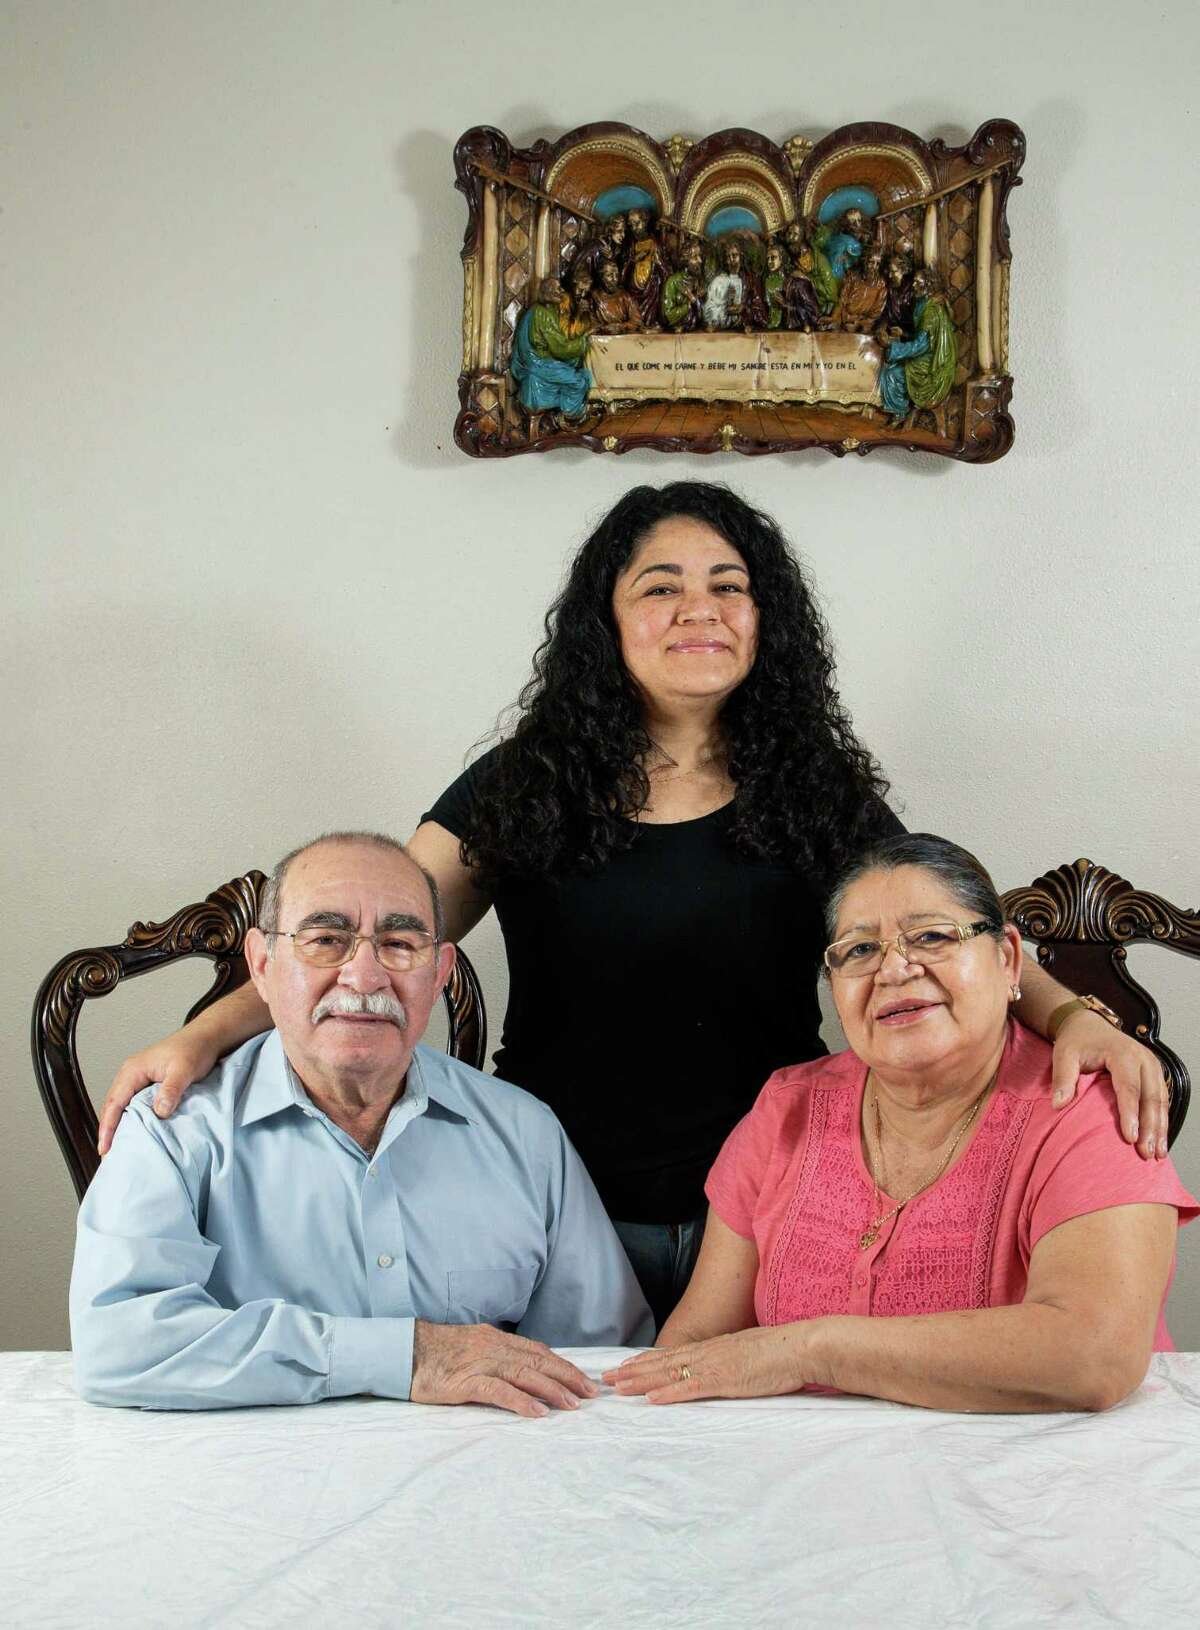 Edith Sorto, center, and her parents Santos, left, and Hilda Molina pose for a portrait in their dinning room Wednesday, March 17, 2021, in Houston. Sorto, 40, handles her parents' doctor's appointment, medications and making sure they were able to find a COVID-19 vaccine. Her parents don't speak English, don't have much technological knowledge and don't drive. Edith has had to figure everything out, mostly on her own, on her parents' behalf.